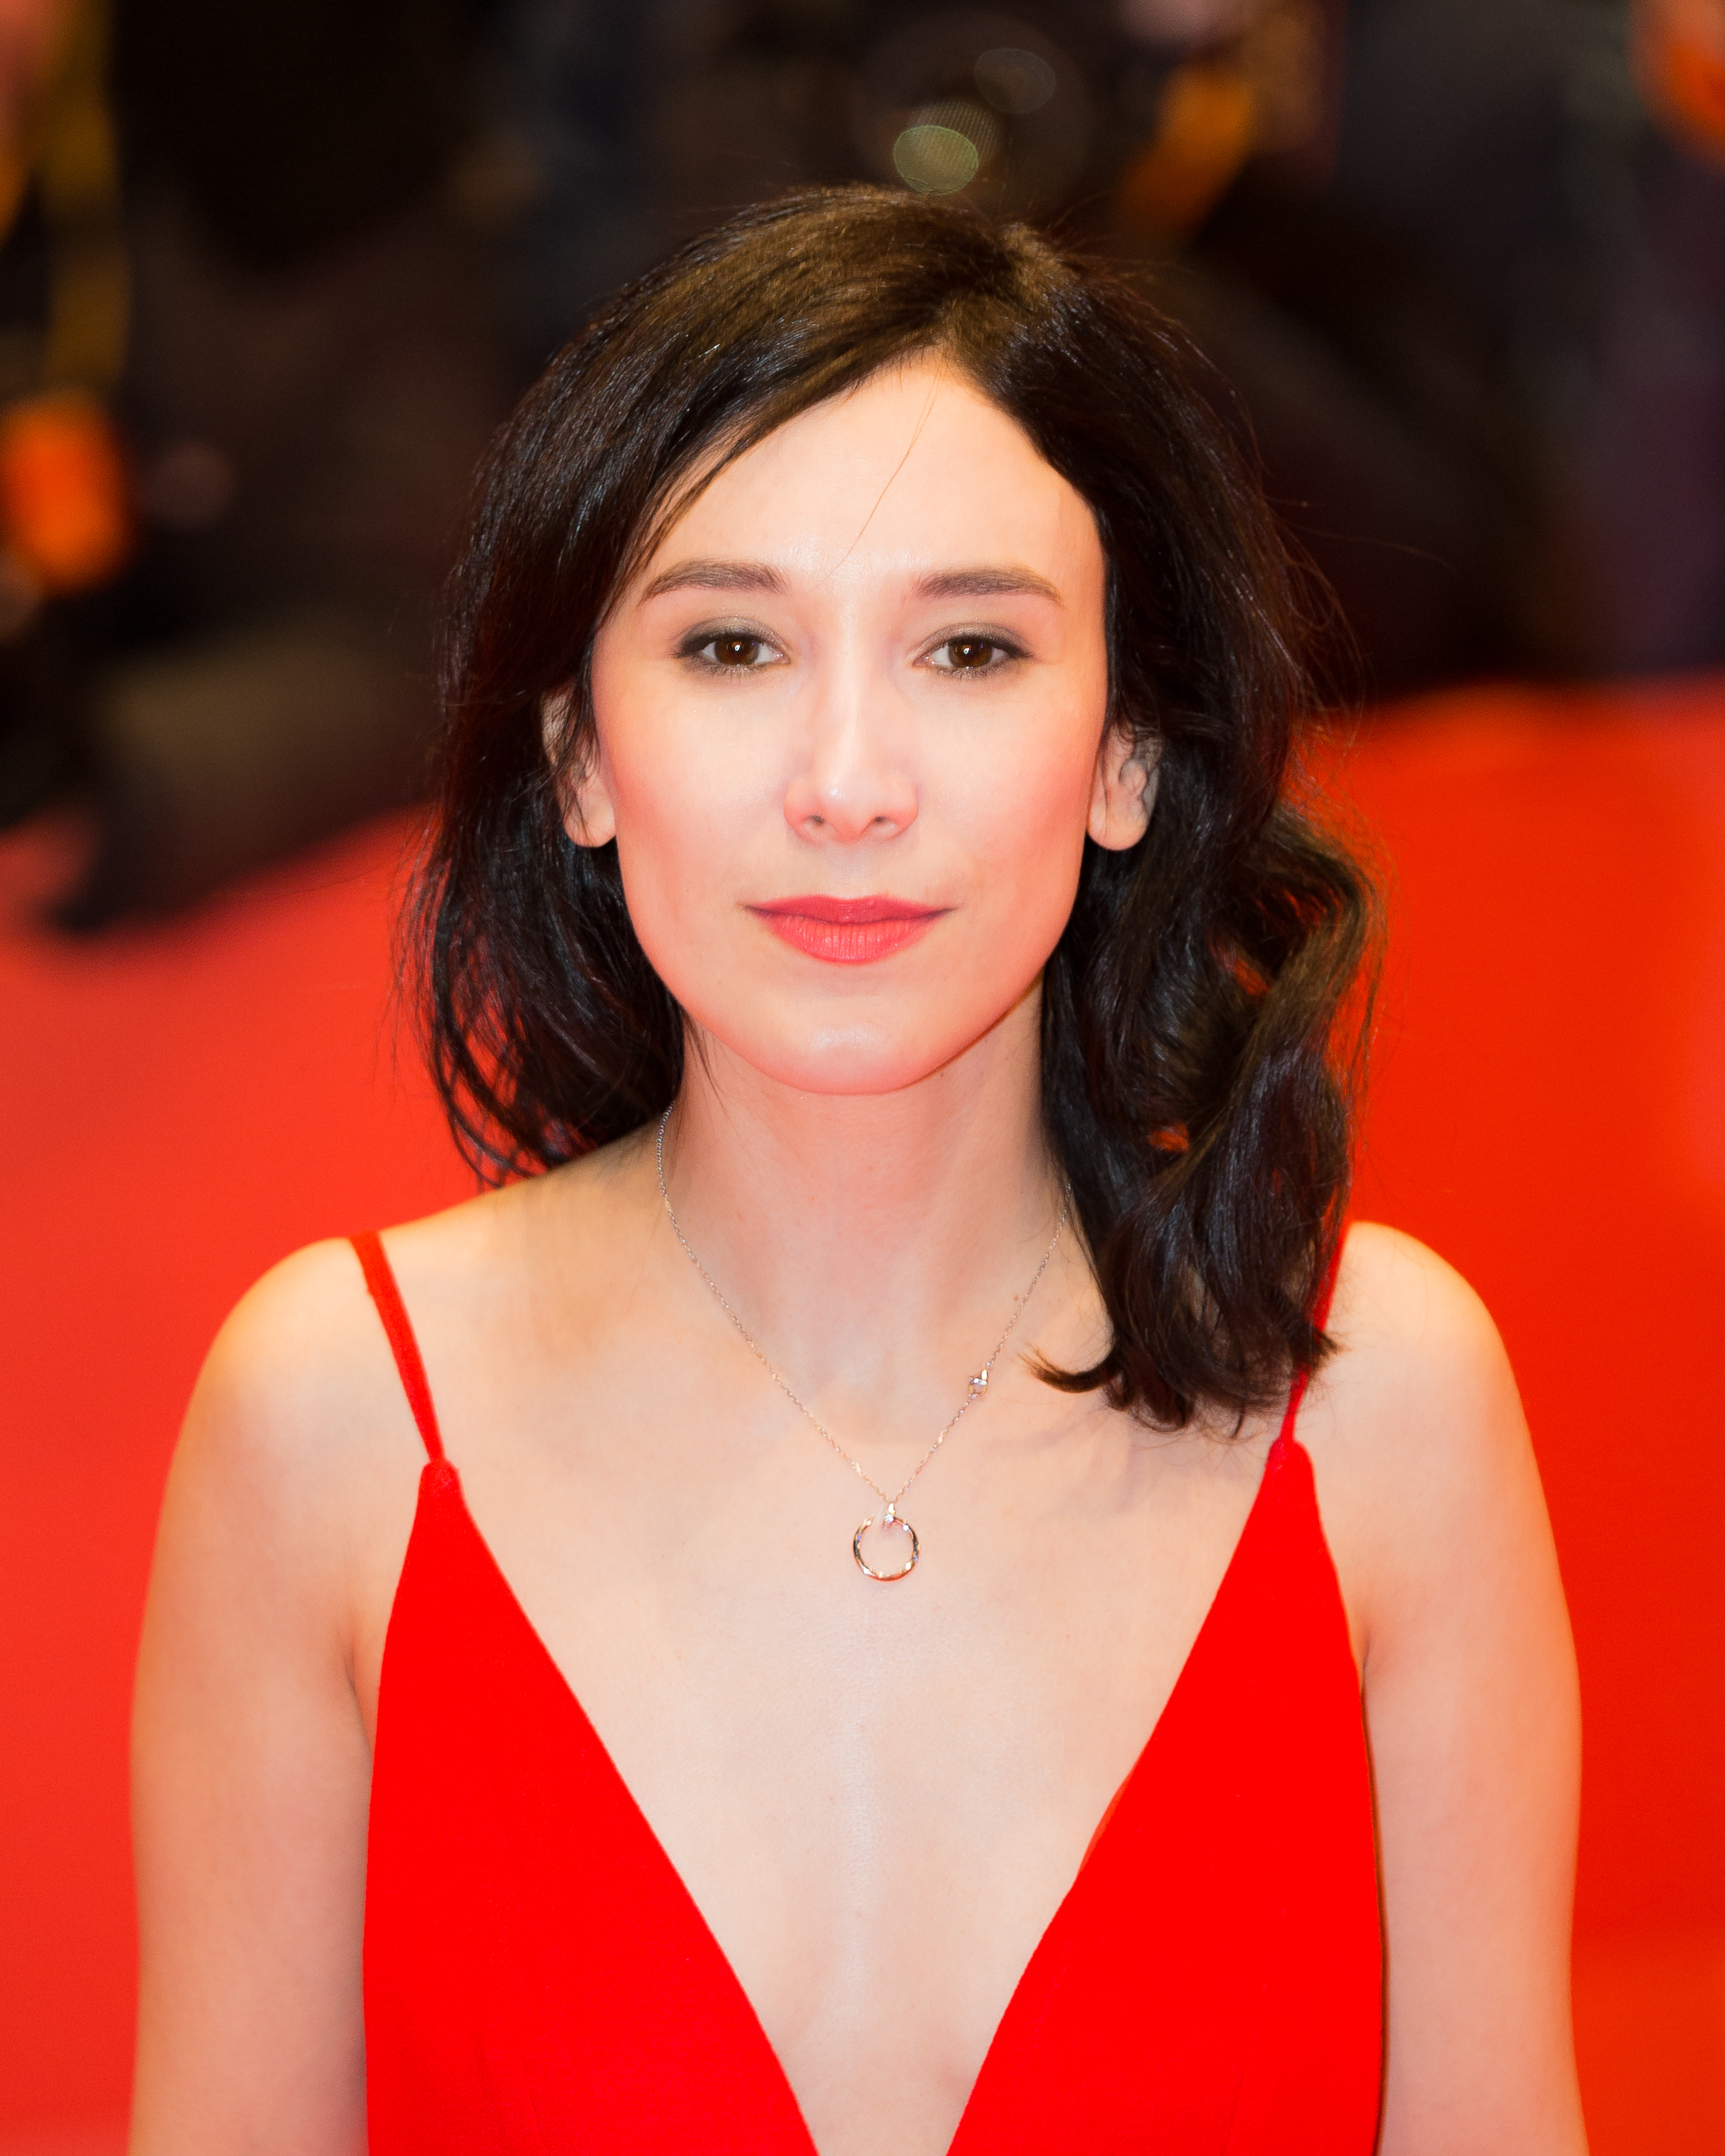 Kekilli at the [[67th Berlin International Film Festival|2017 Berlin International Film Festival]]